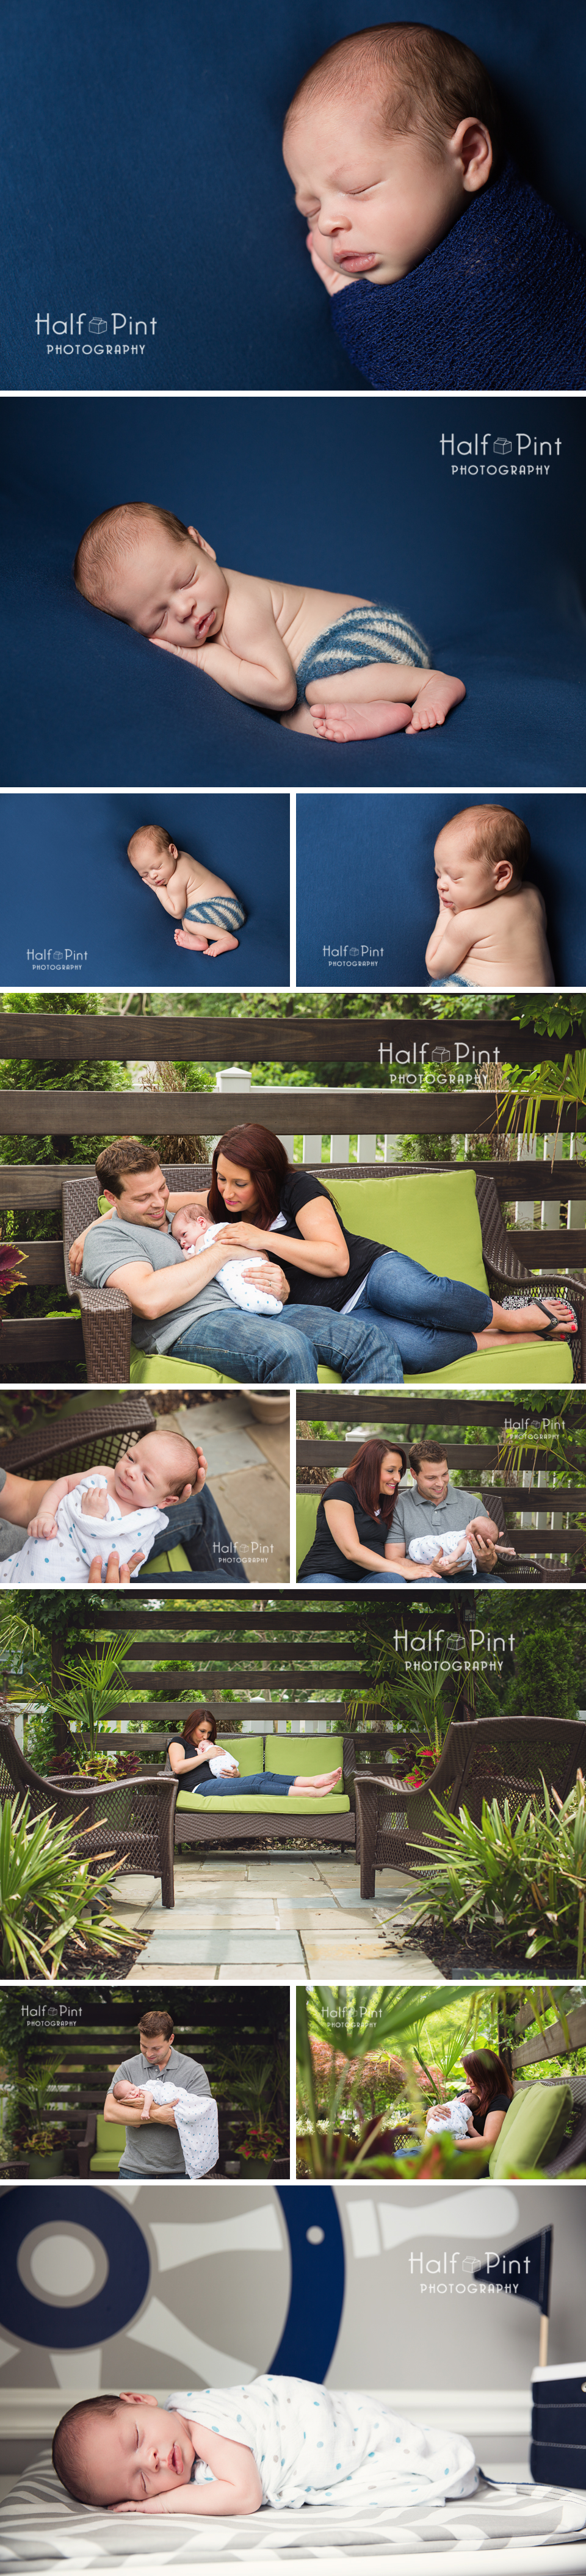 bergen-county-nj-newborn-photos